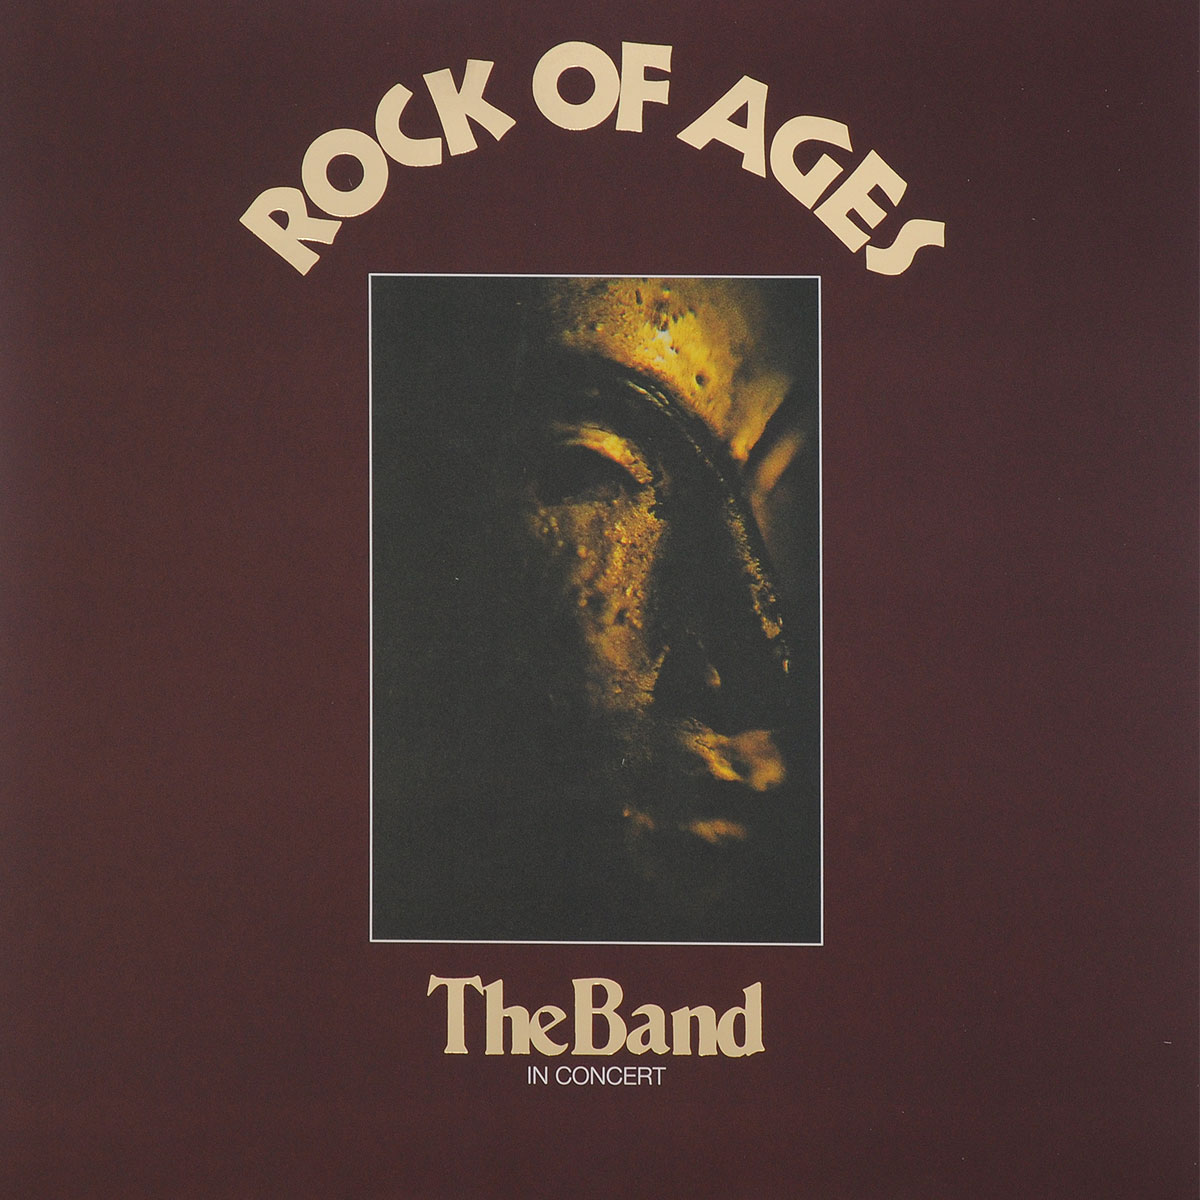 The Band The Band. Rock Of Ages. The Band In Concert (2 LP) band sony